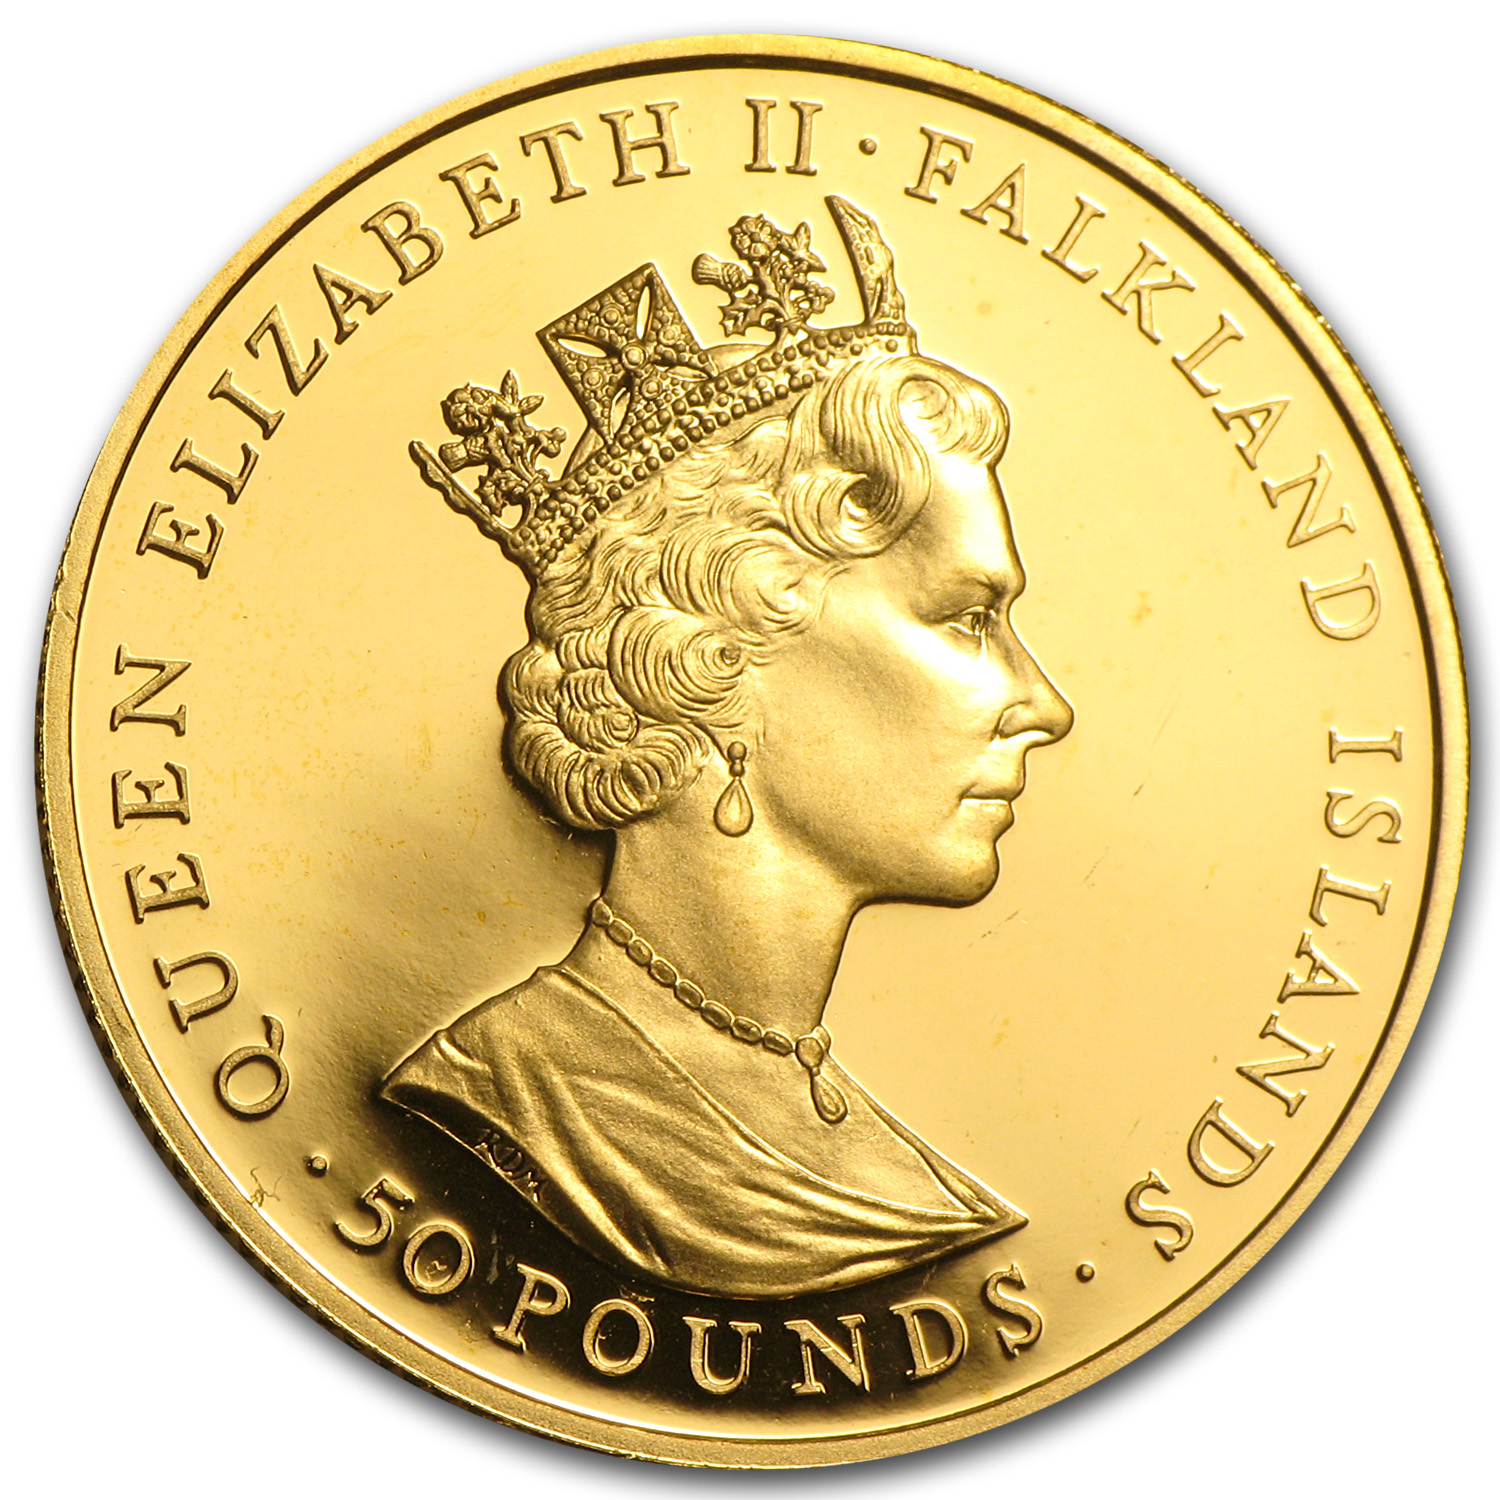 Falkland Islands 1992 Gold 50 Pounds Proof